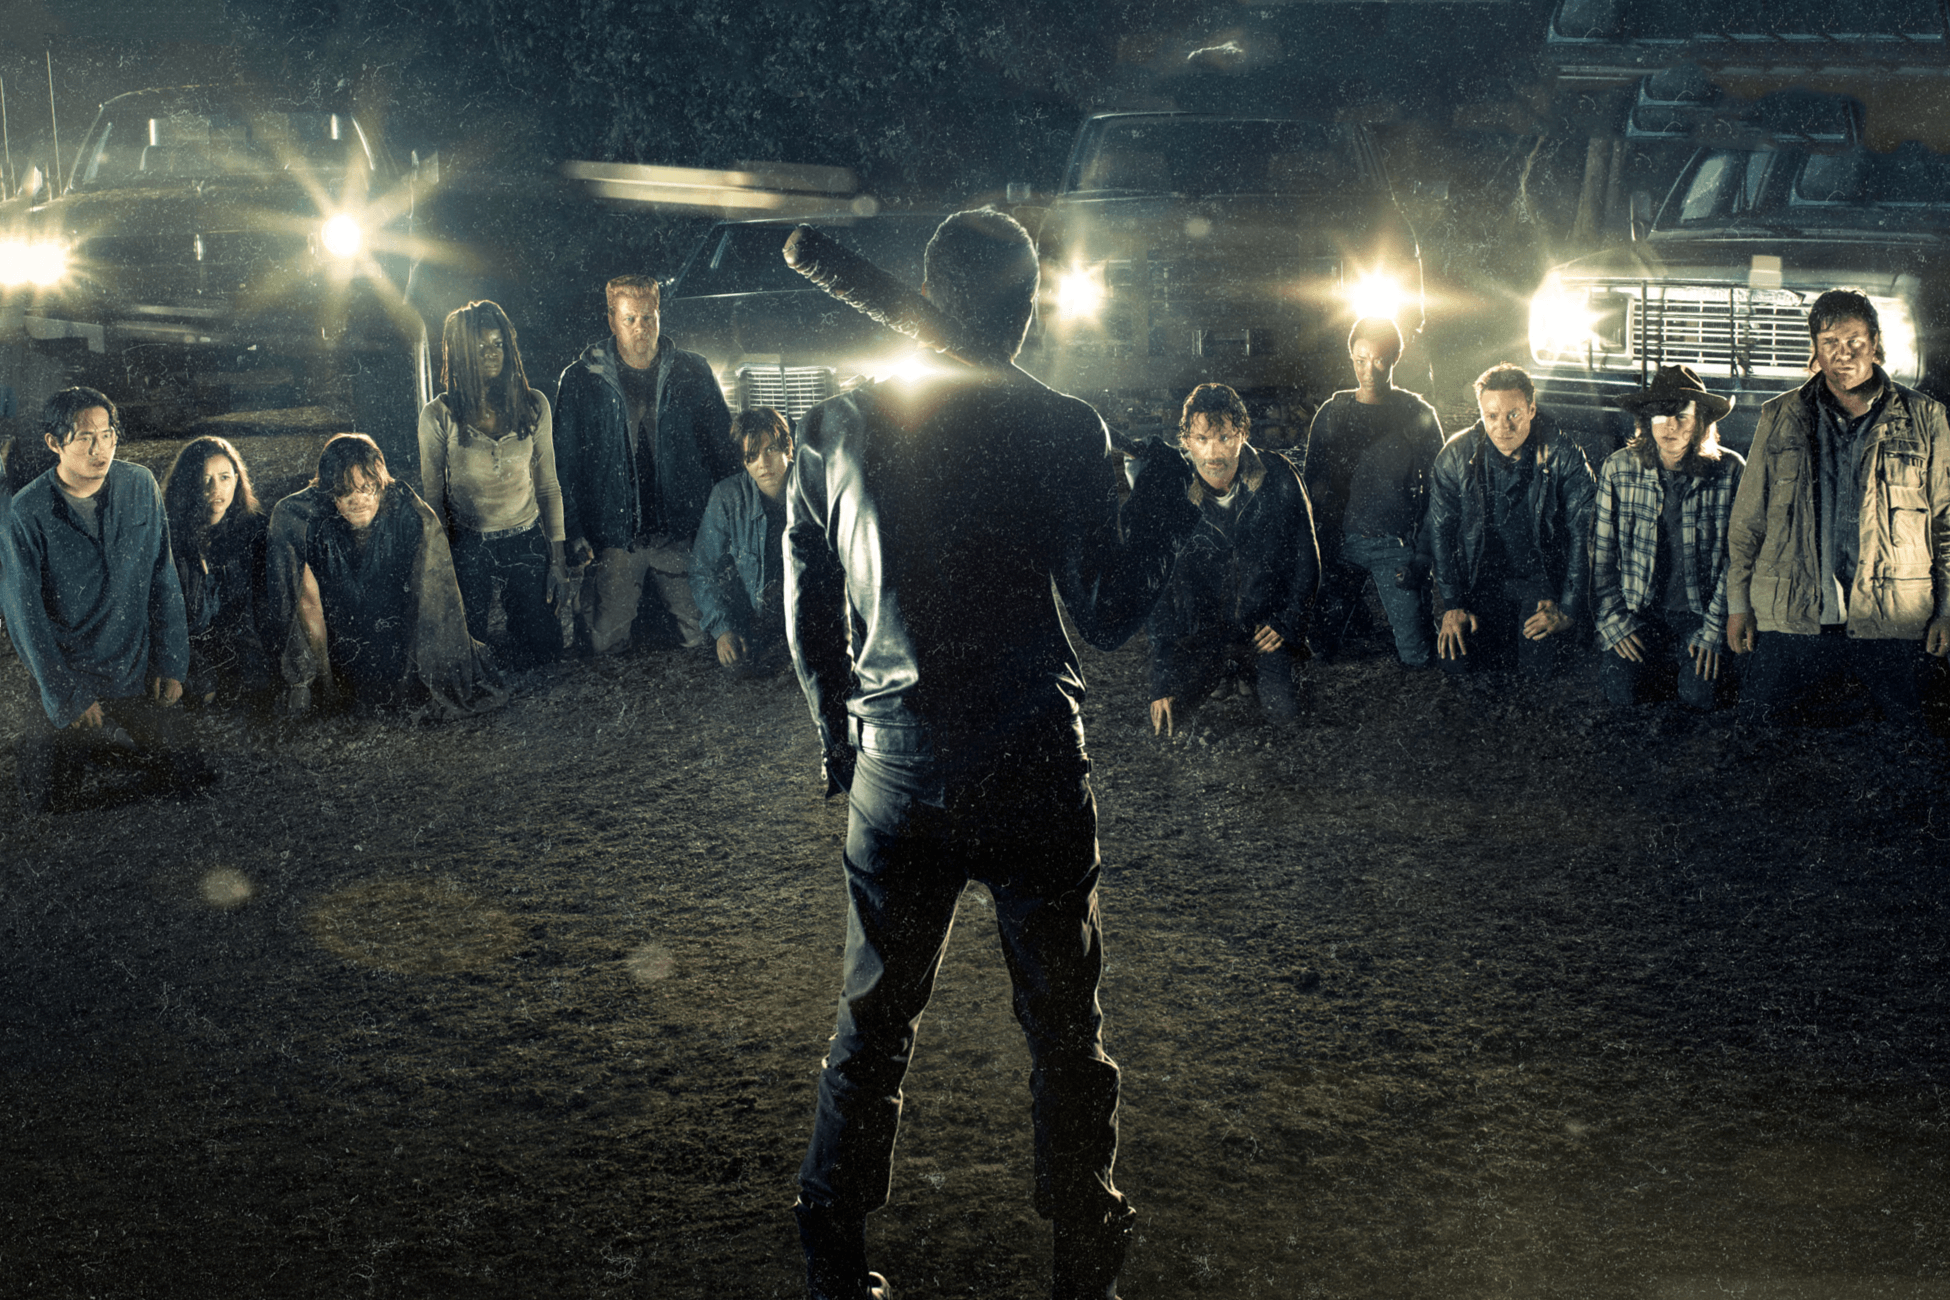 Picture of Check out the Leaked Footage of Alternate Deaths From 'The Walking Dead' Season 7 Premiere